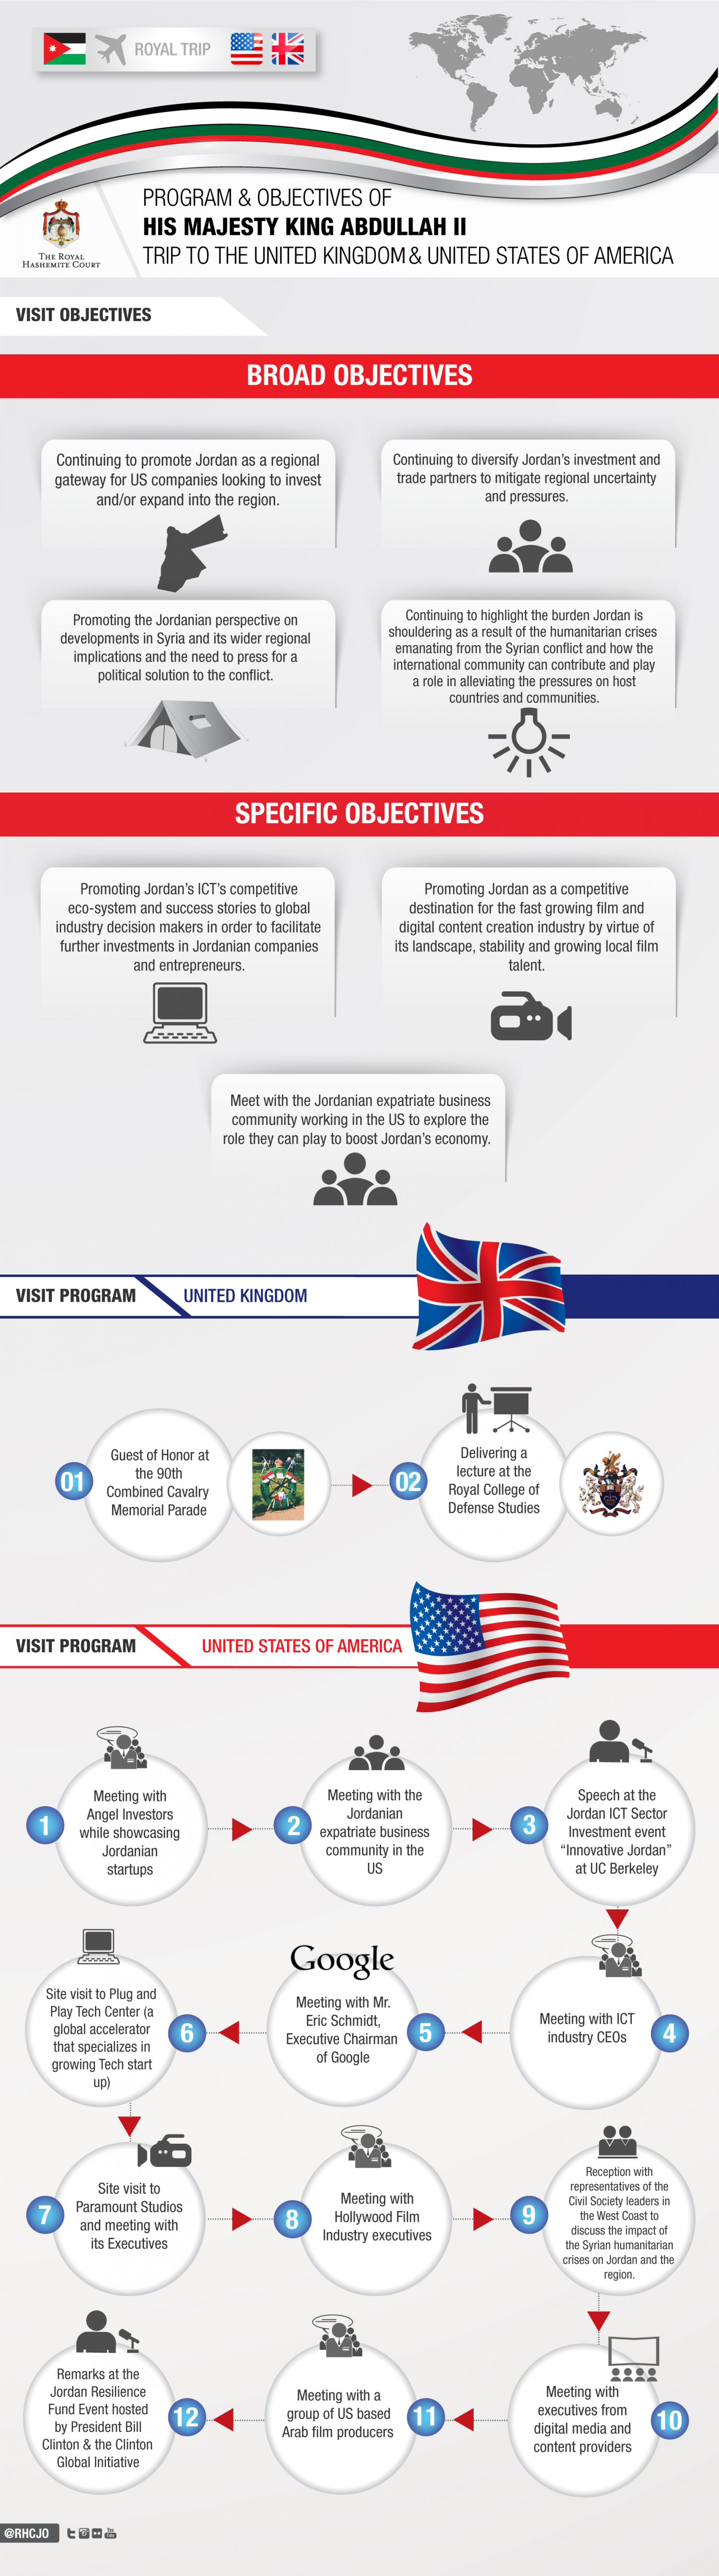 The Objectives and Program of His Majesty King Abdullah II Working Visit to the UK & US Infographic